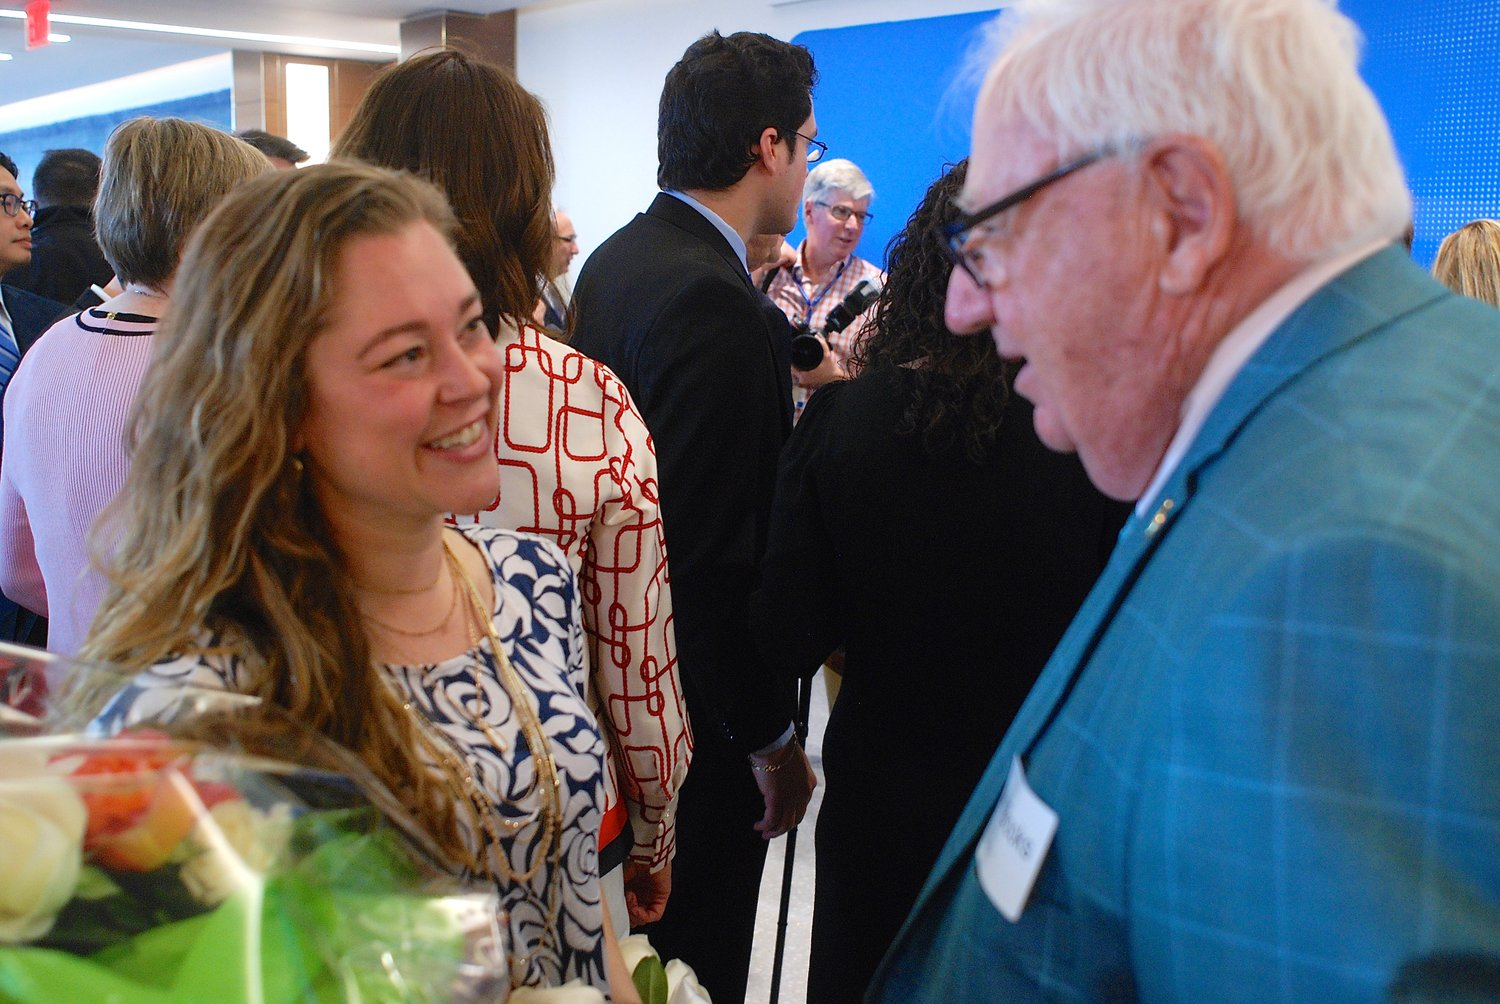 Stacy Miranda, of Long Beach, who was successfully treated for breast cancer at Memorial Sloan Kettering Cancer Center, chatted with State Sen. John Brooks, of Seaford, after she gave a keynote speech at the grand-opening ceremony for MSK's newest center, on Hempstead Turnpike in Uniondale.